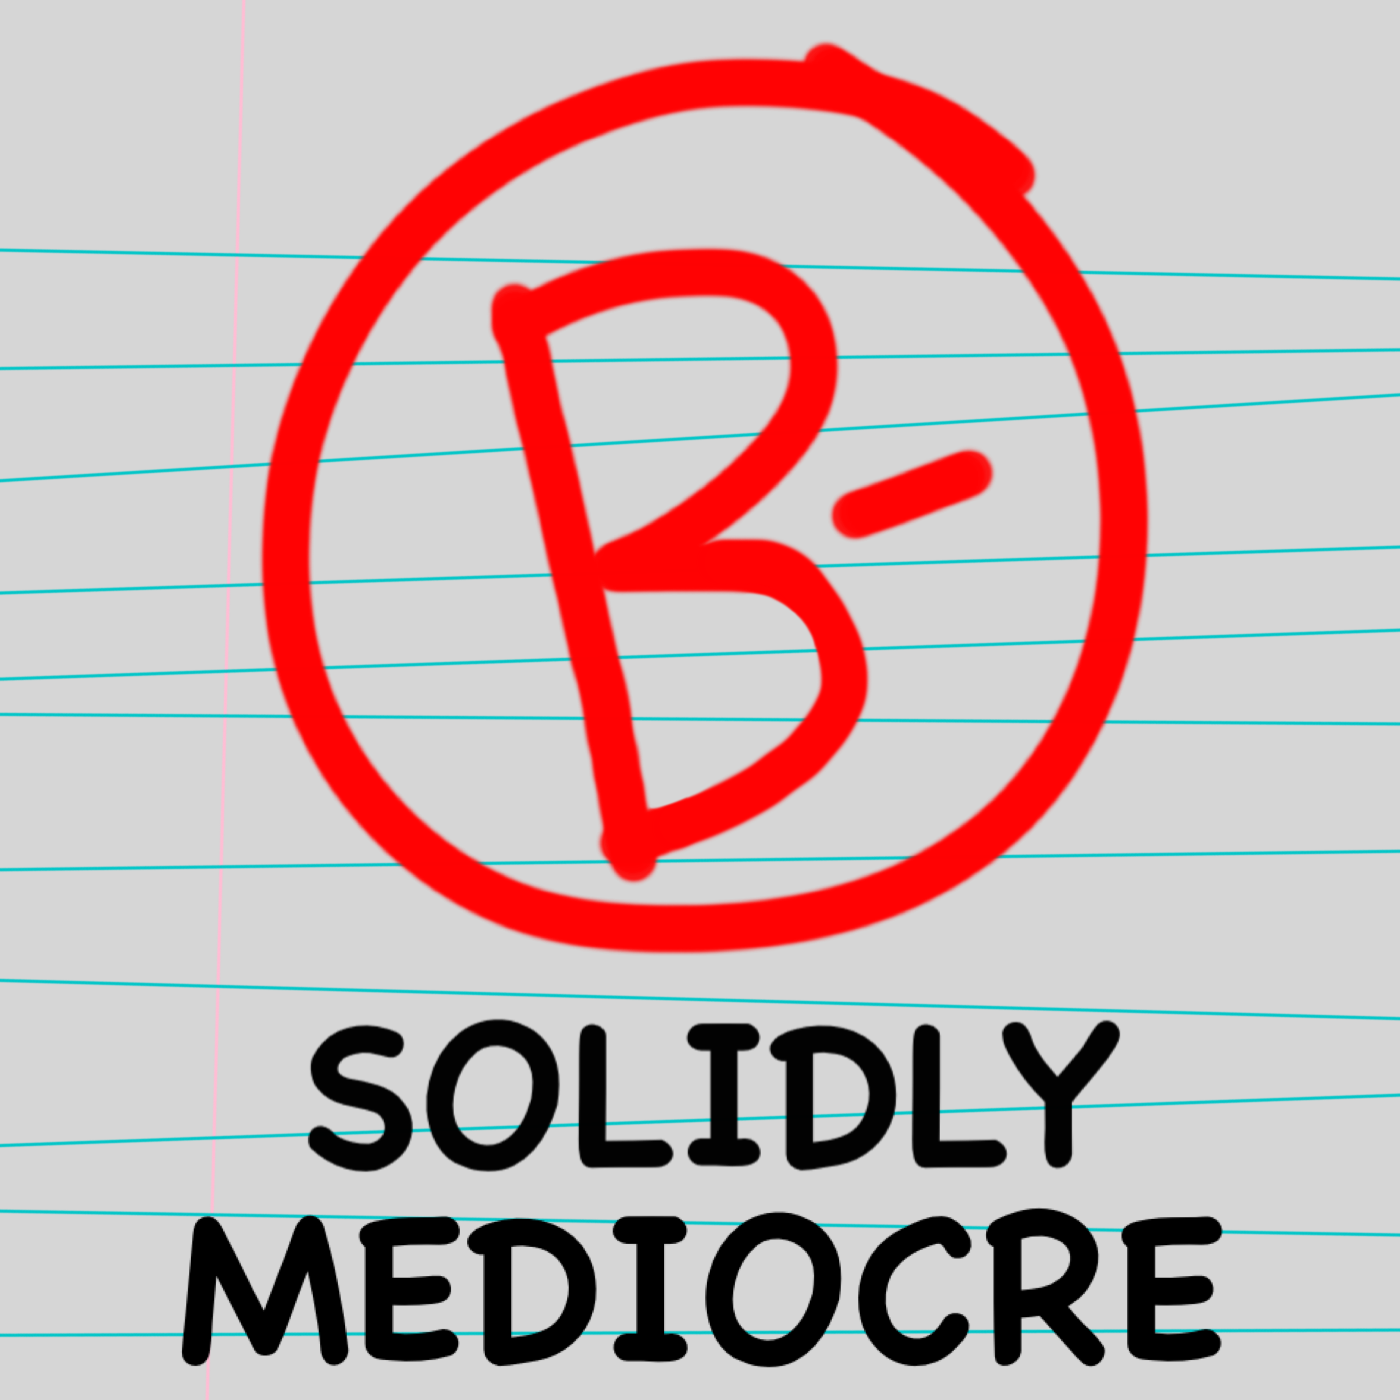 Solidly Mediocre - Solidly Mediocre was a podcast about college, mistakes, and becoming an adult. Hosted by me and a rotating cast of friends, Solidly Mediocre was a place for a fun conversation about figuring out adulthood. You can stream a sample episode below from Bisexual Awareness Week 2017.Find Solidly Mediocre here or in your podcast player of choice.